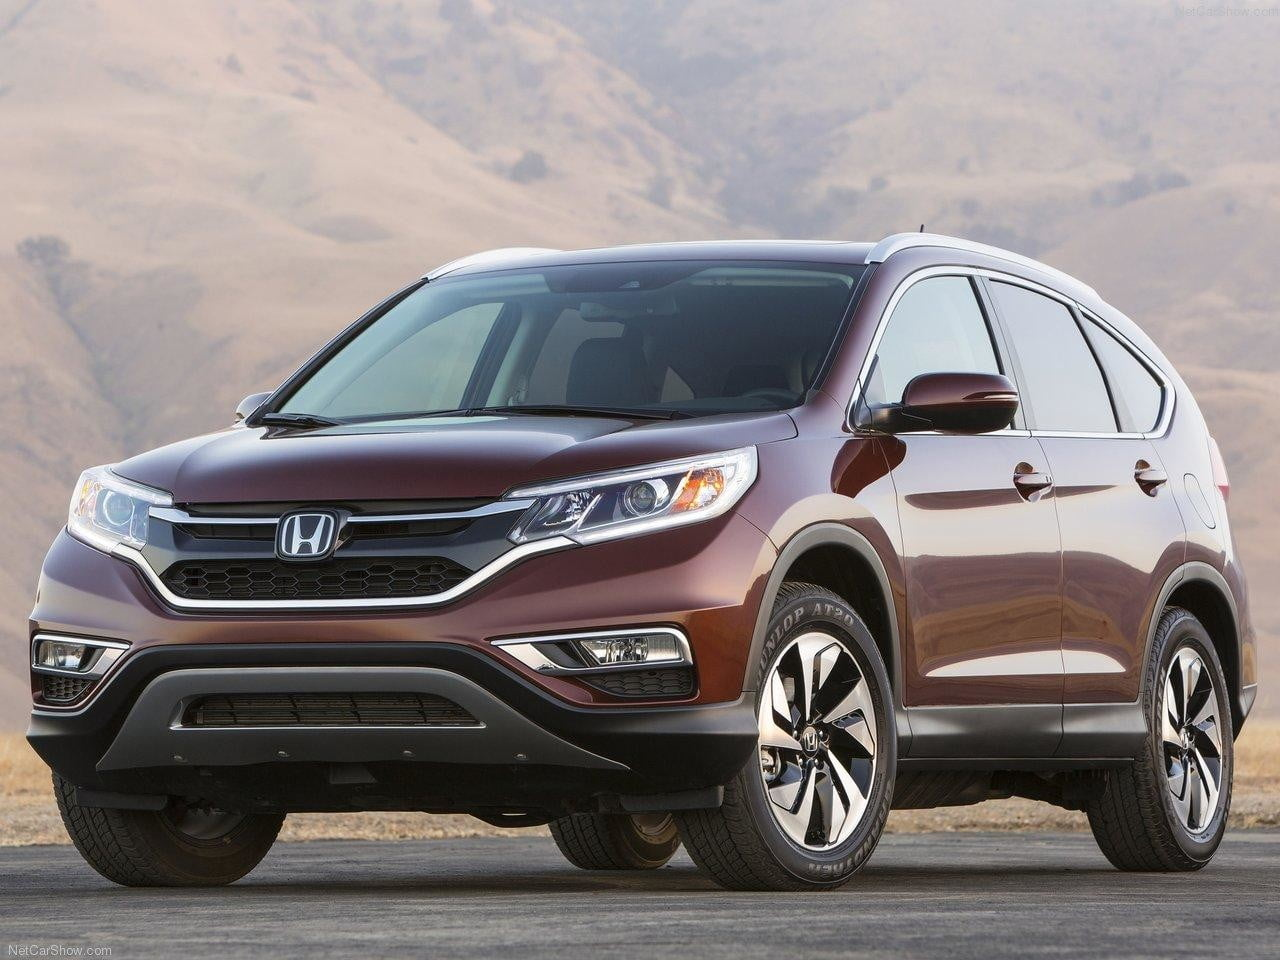 Honda what is the length of a honda crv : Honda's next generation CR-V will grow in size, seat seven, and ...